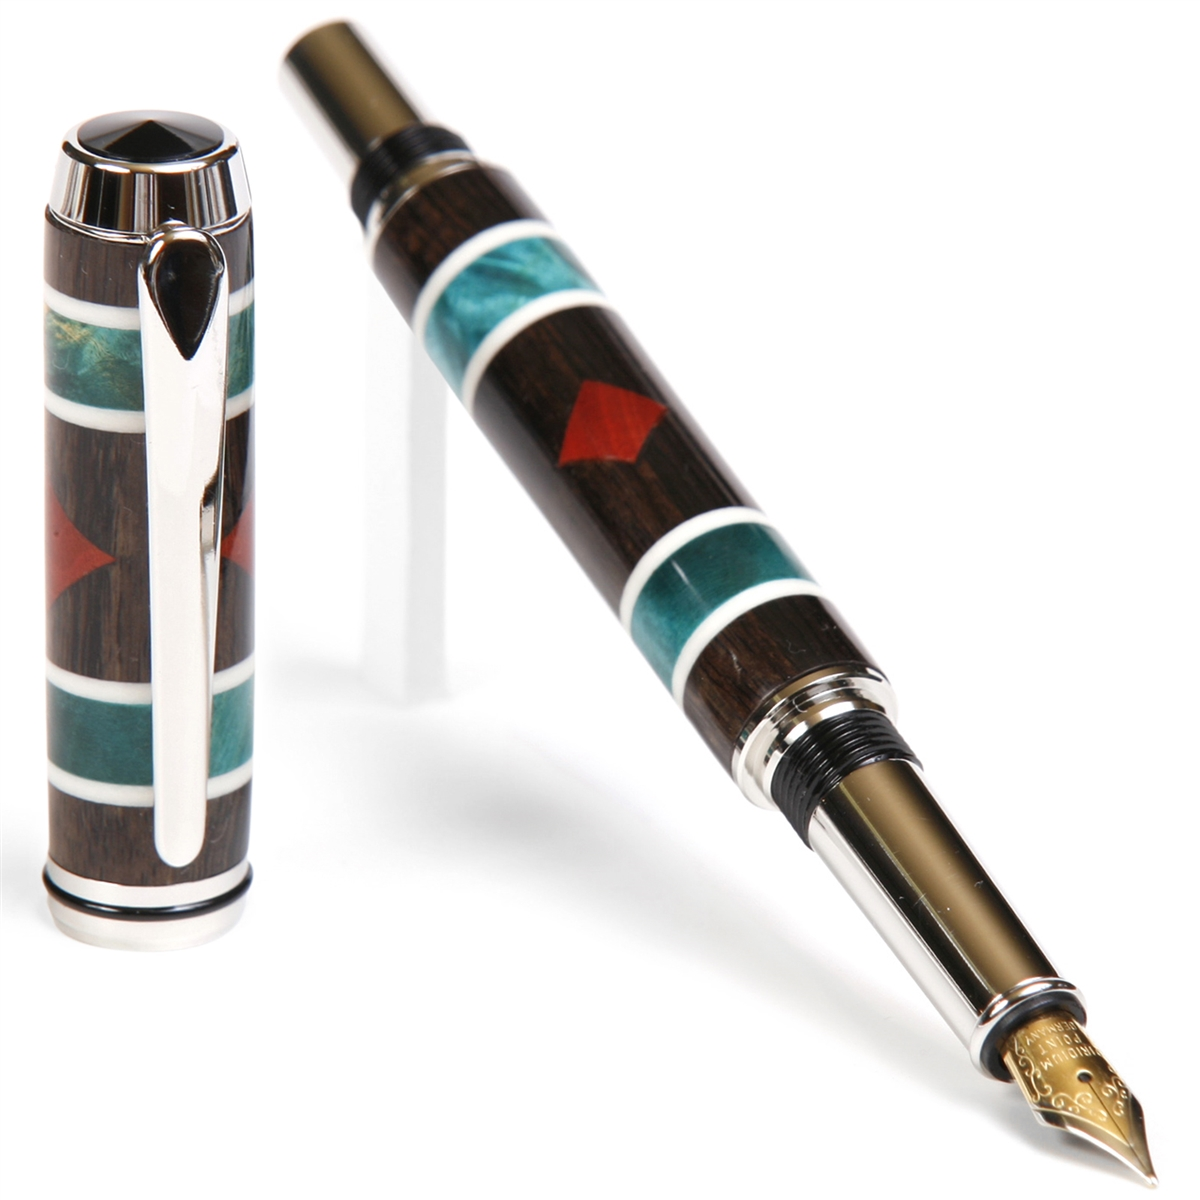 Baron Fountain Pen - Blackwood & Turquoise Box Elder with Bloodwood Inlays